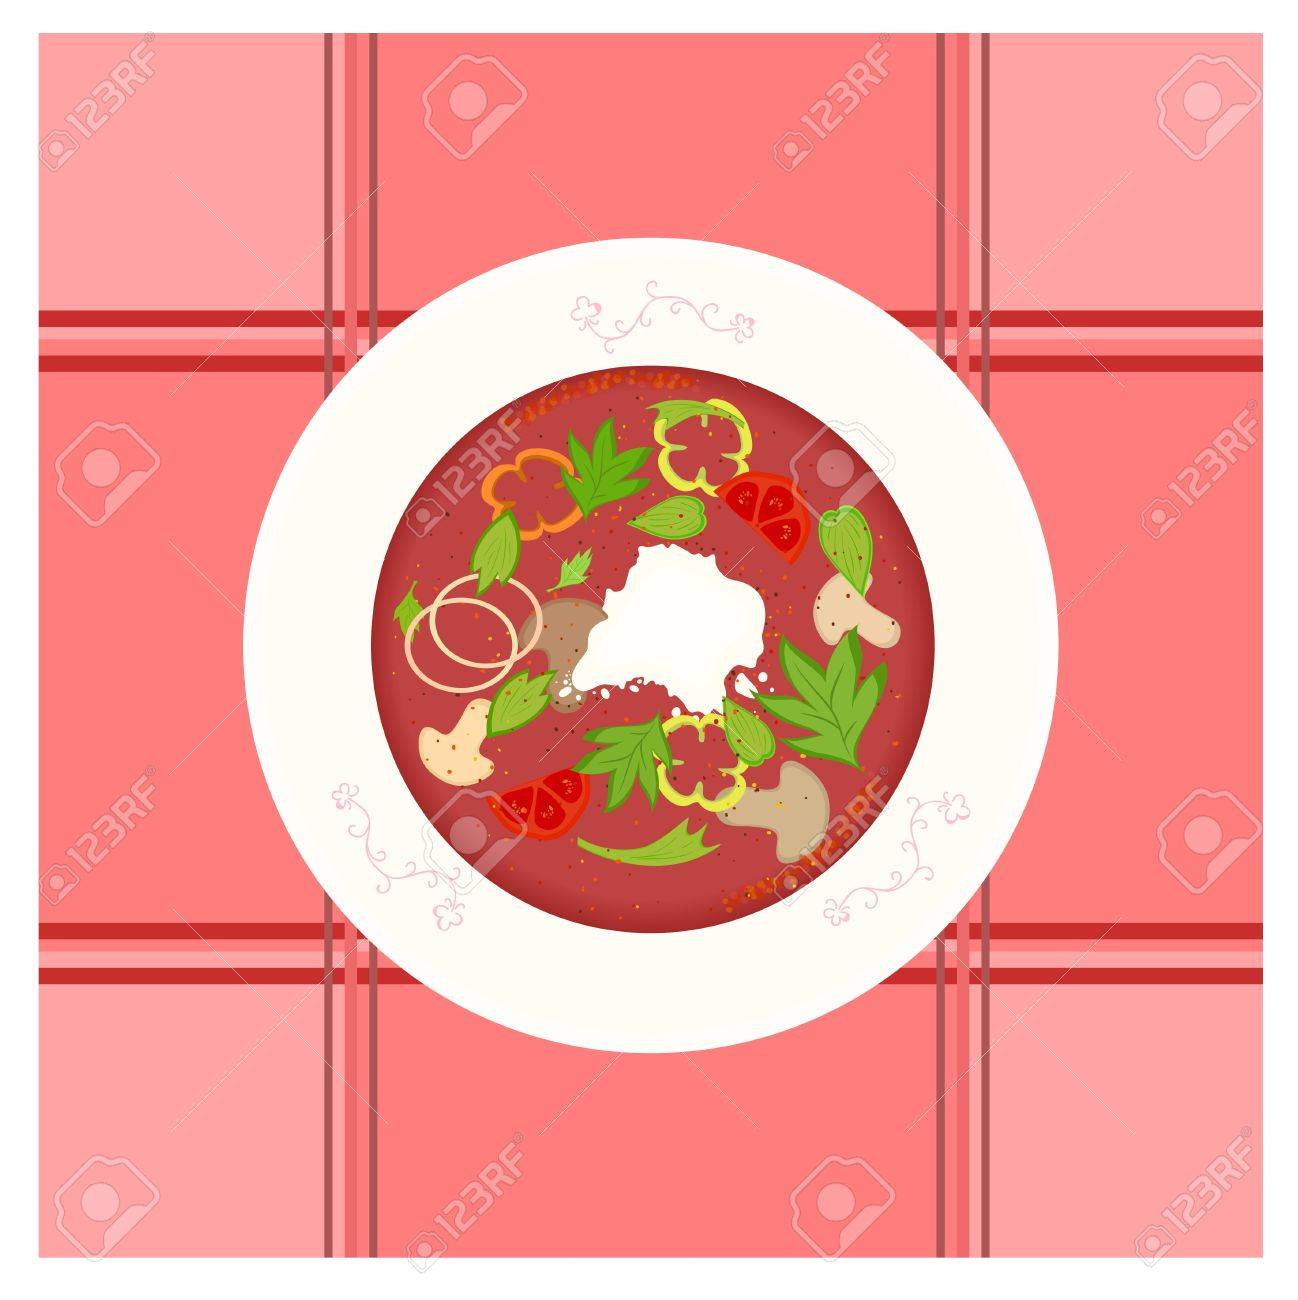 colorful vector illustration of mushroom and vegetable borsch soup in decorated plate. Stock Vector - 15202159